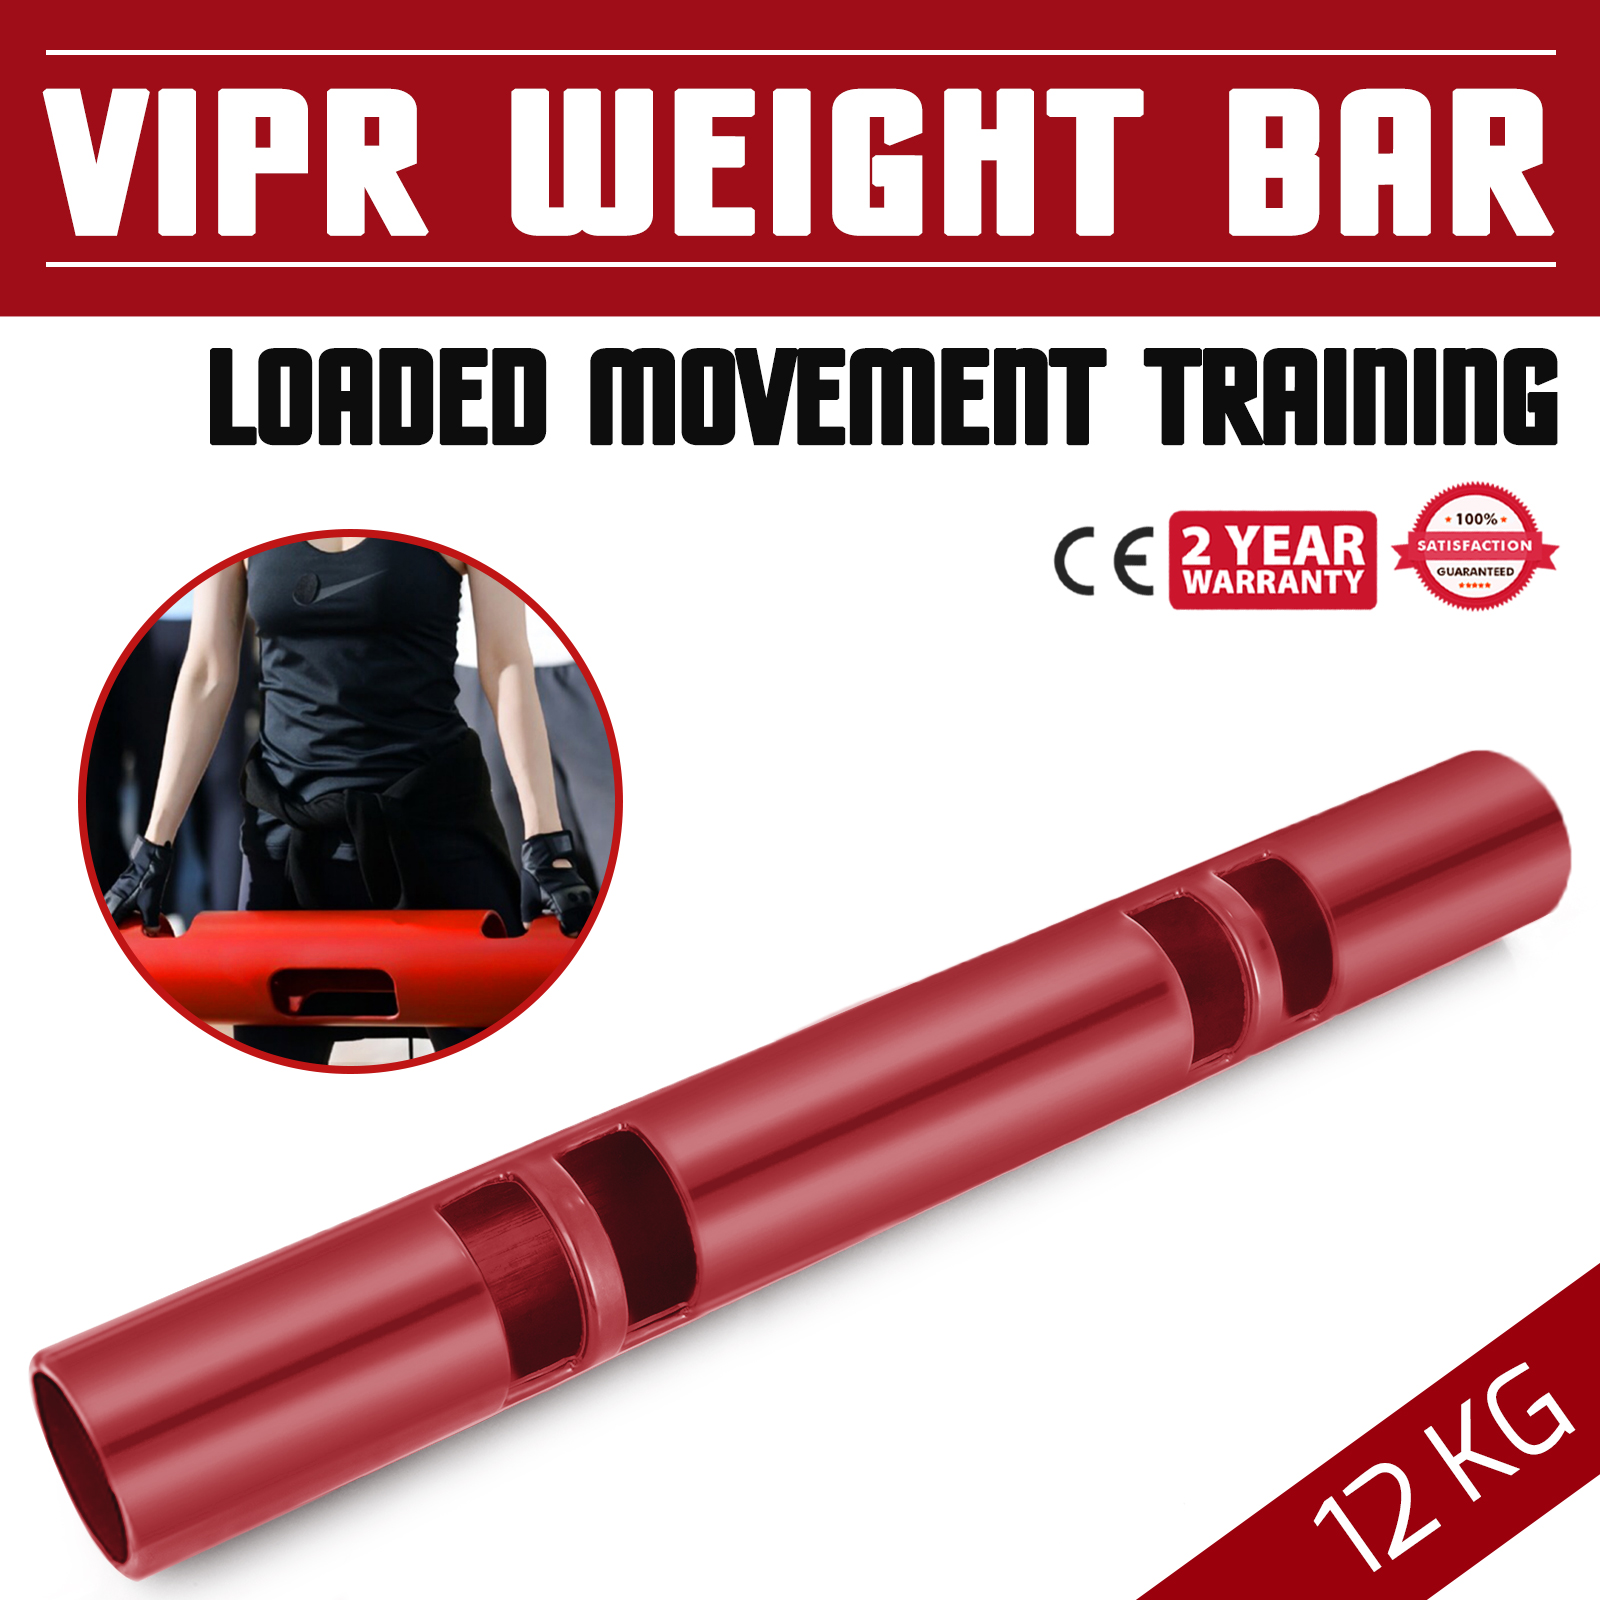 Vipr-Fitpro-Fitness-Tube-Loaded-Movement-Training-weightlifting-4-6-8-10-12-Kg thumbnail 61